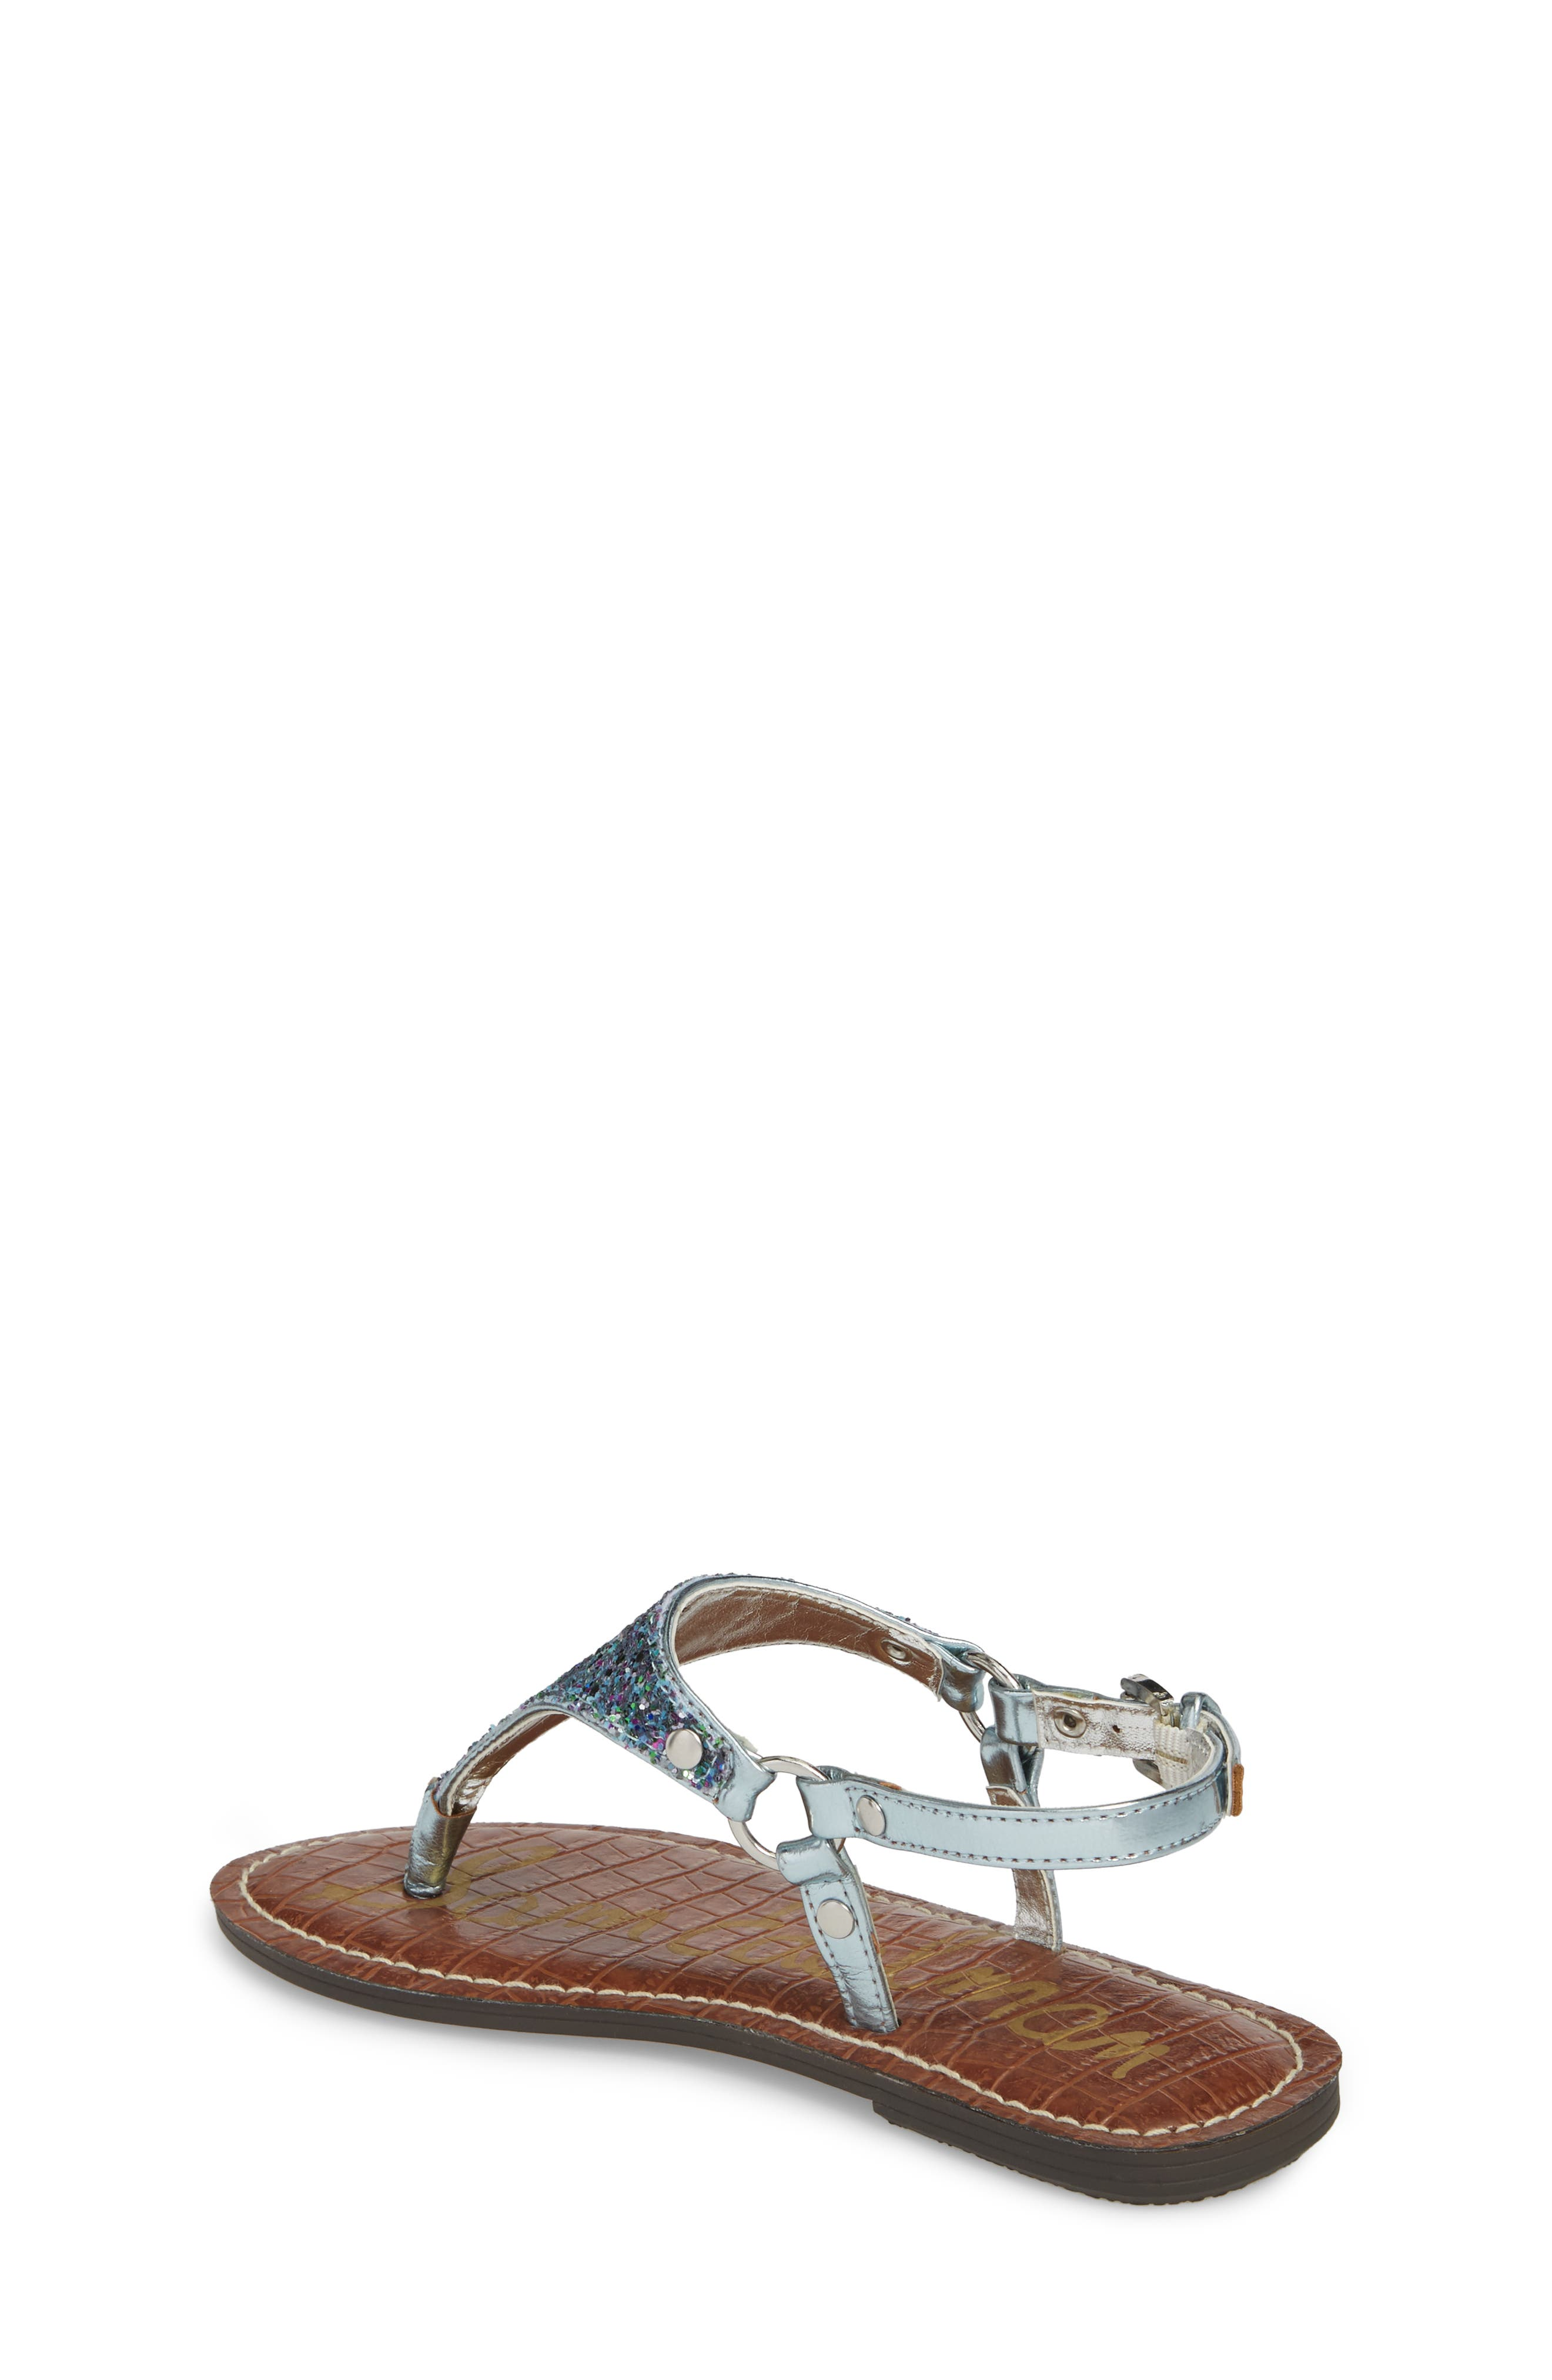 Gigi Greta Sandal,                             Alternate thumbnail 2, color,                             440